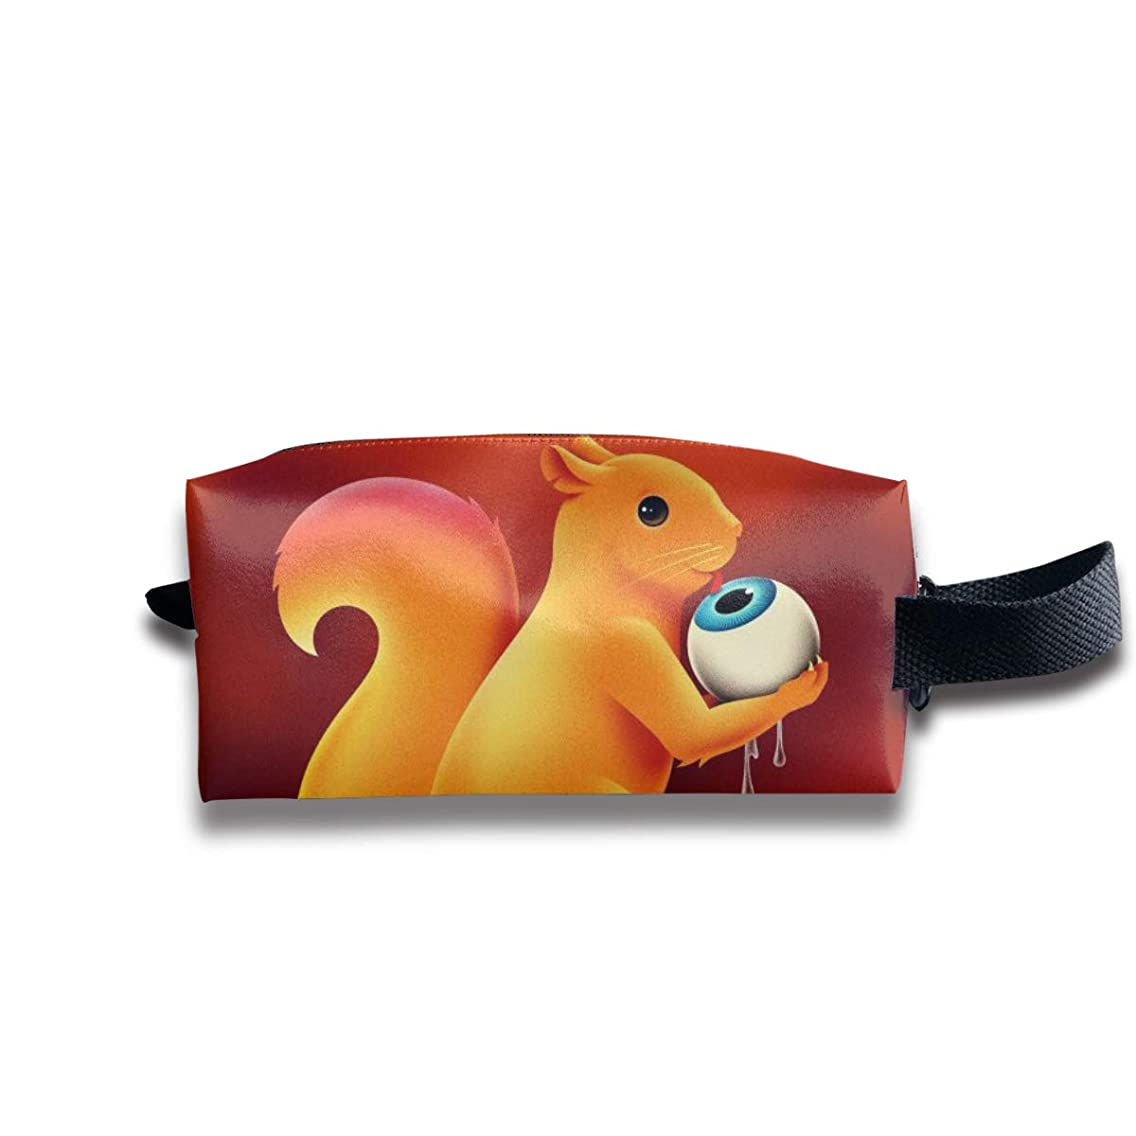 Unique Psychedelic Squirrel Portable Pencil Bag Coin Purse Pouch Stationery Storage Organizer Case Cosmetic Makeup Brush Holder with Durable Zipper for Students Office